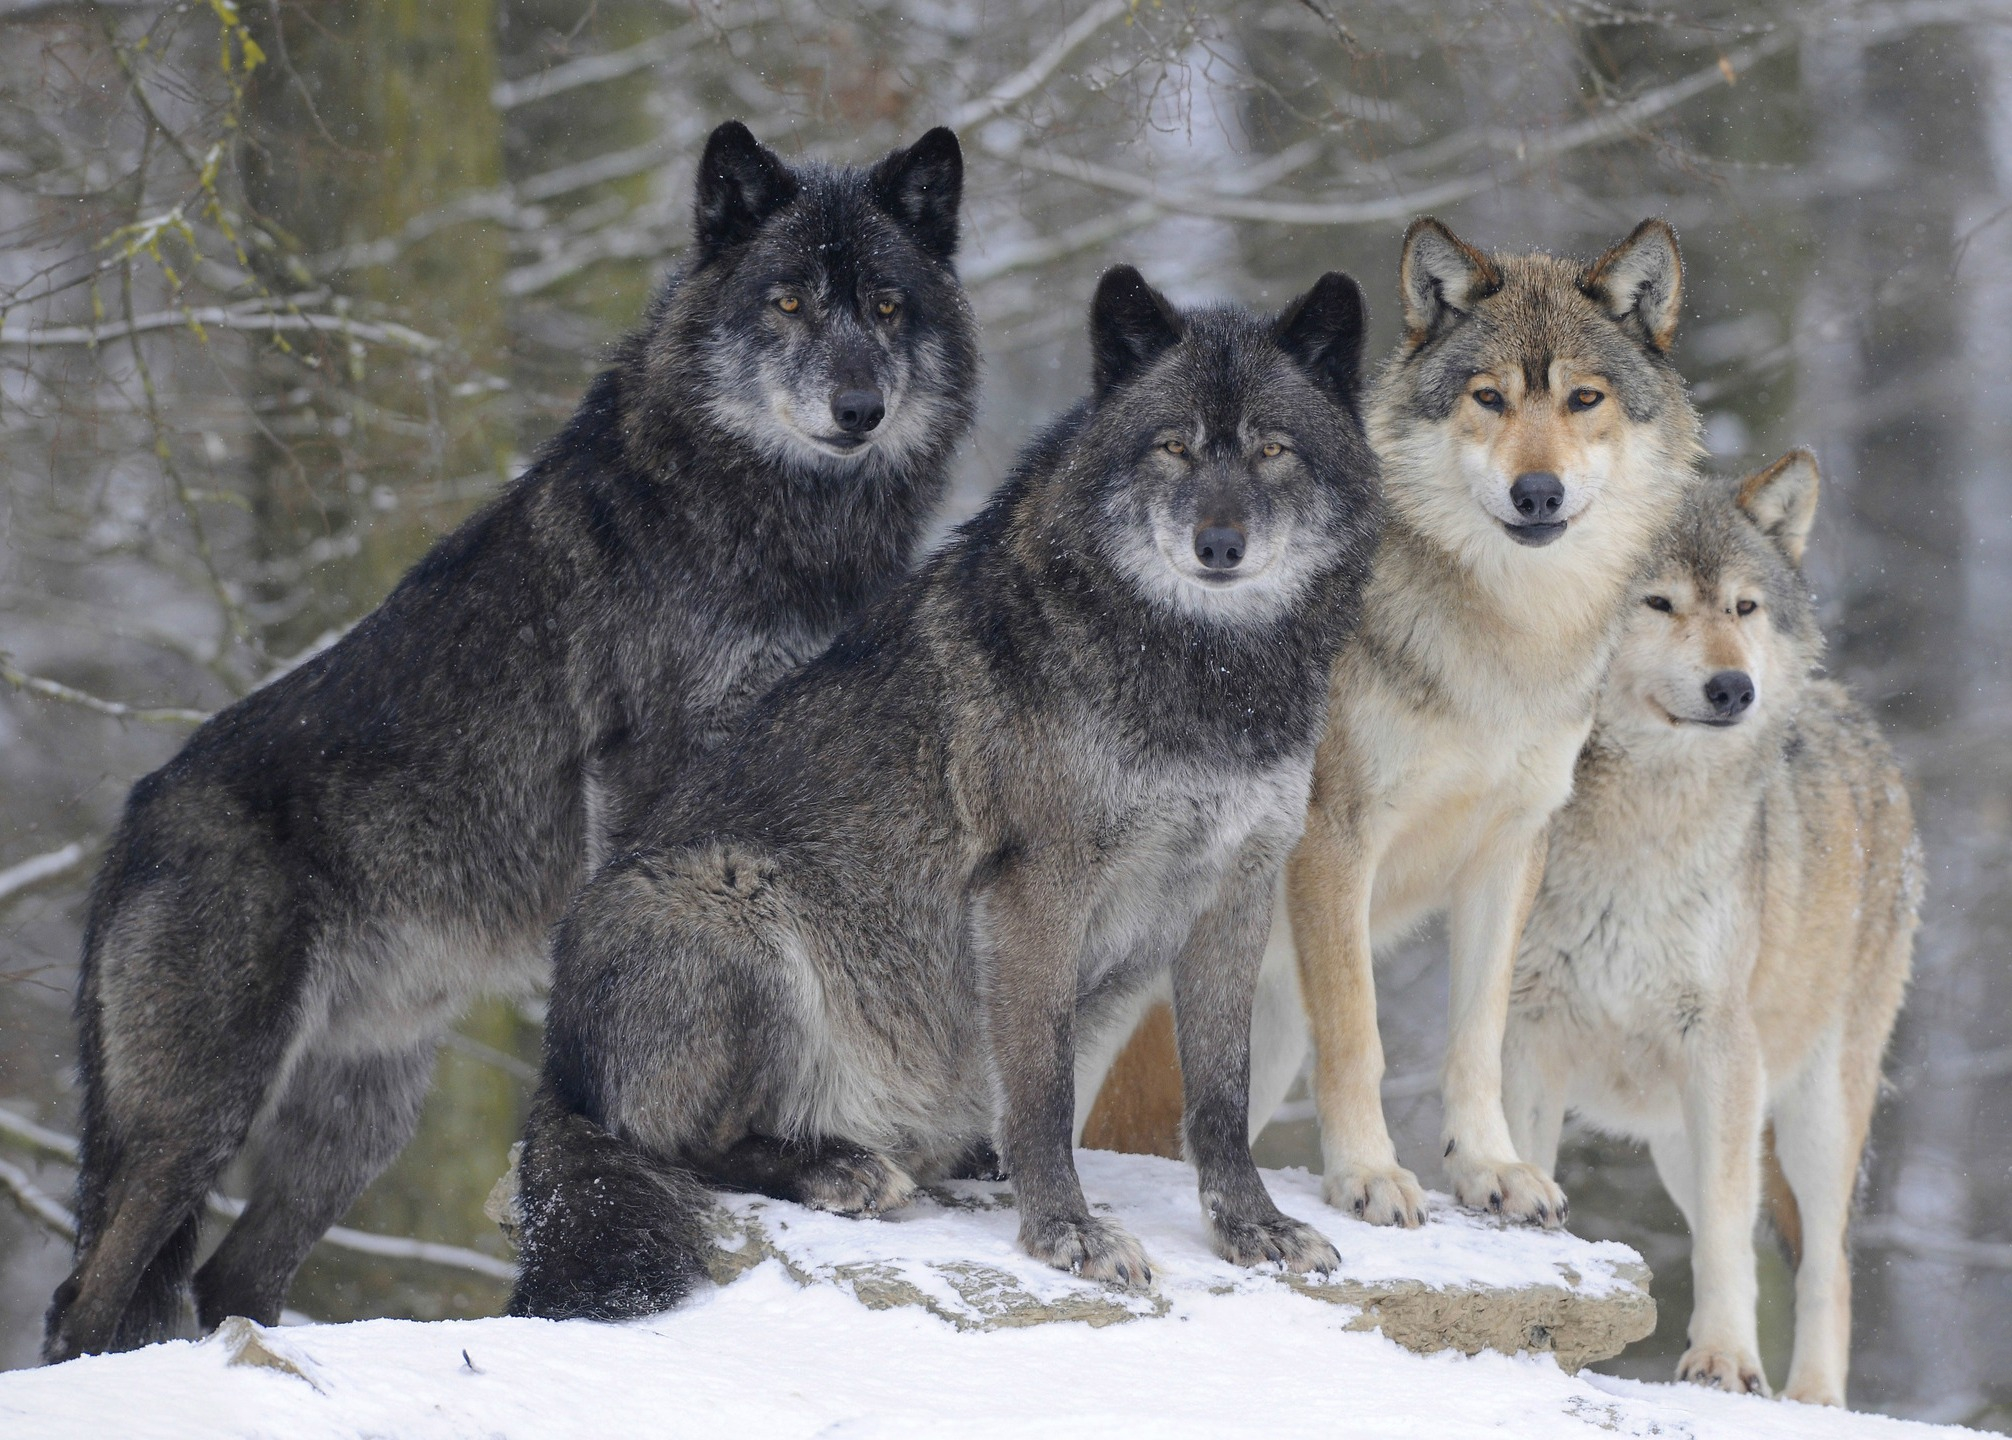 Gray And Black Wolves In Winter Forest Hd Wallpaper